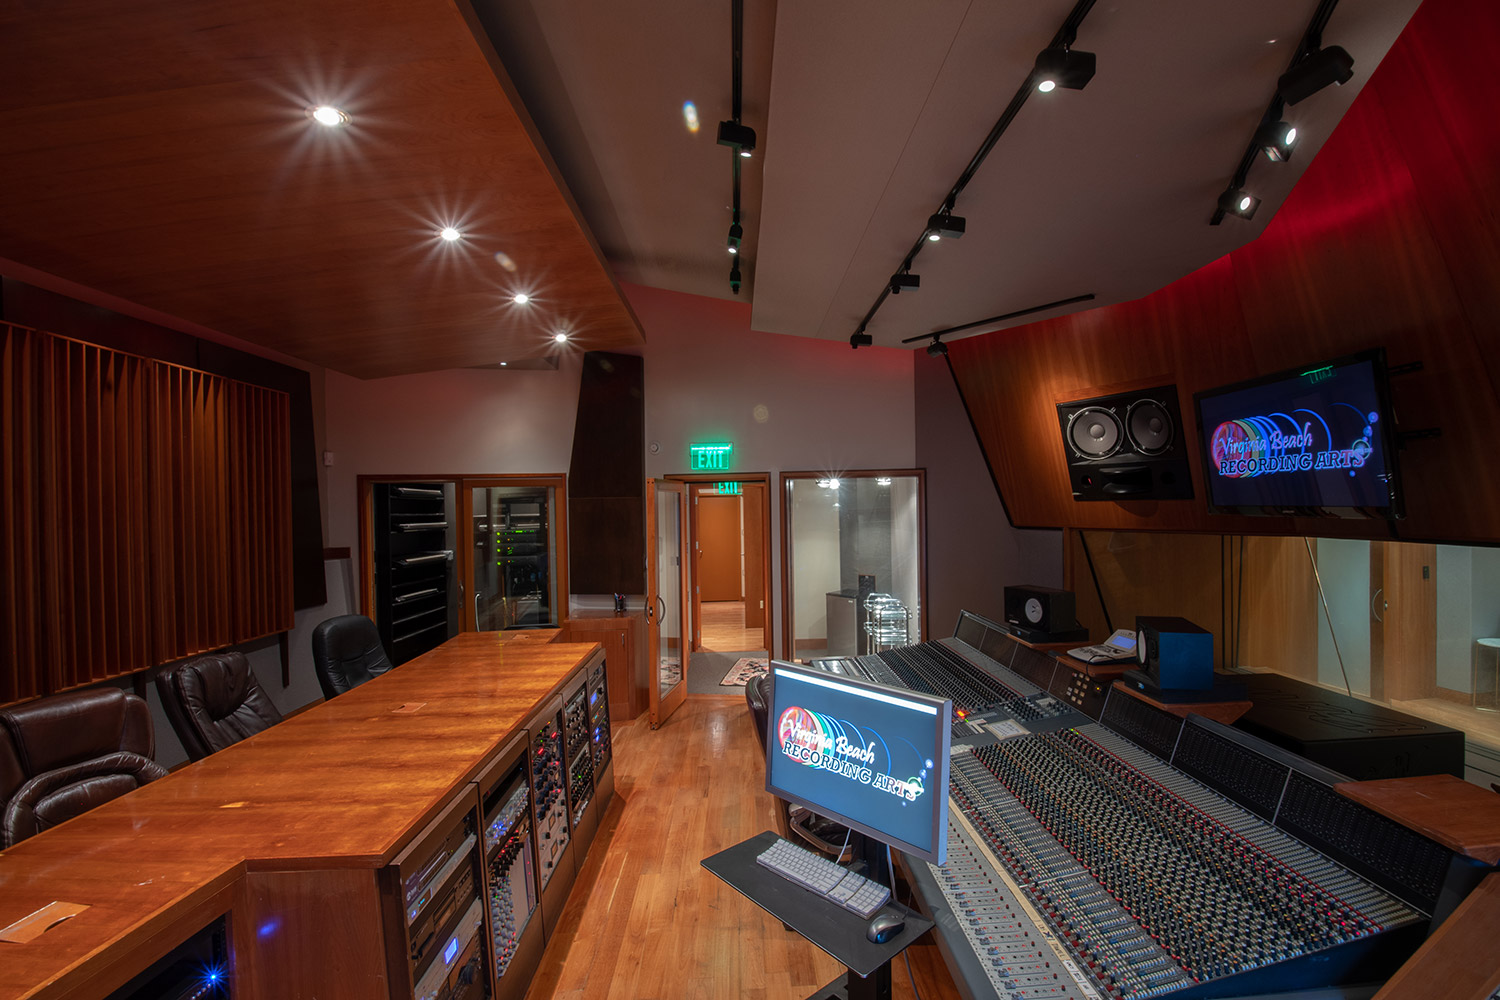 Former Thomas Crown Studio owned by Timbaland, Virginia Beach Recording Studio is a is a spacious 6,756 square ft. two-story 'destination studio' owned by Josh Haddad and designed by WSDG. One of the best recording studios in the world, where artist such as Pharrell, Kanye West, Beyonce and Justin Timberlake record. Control Room Side View.